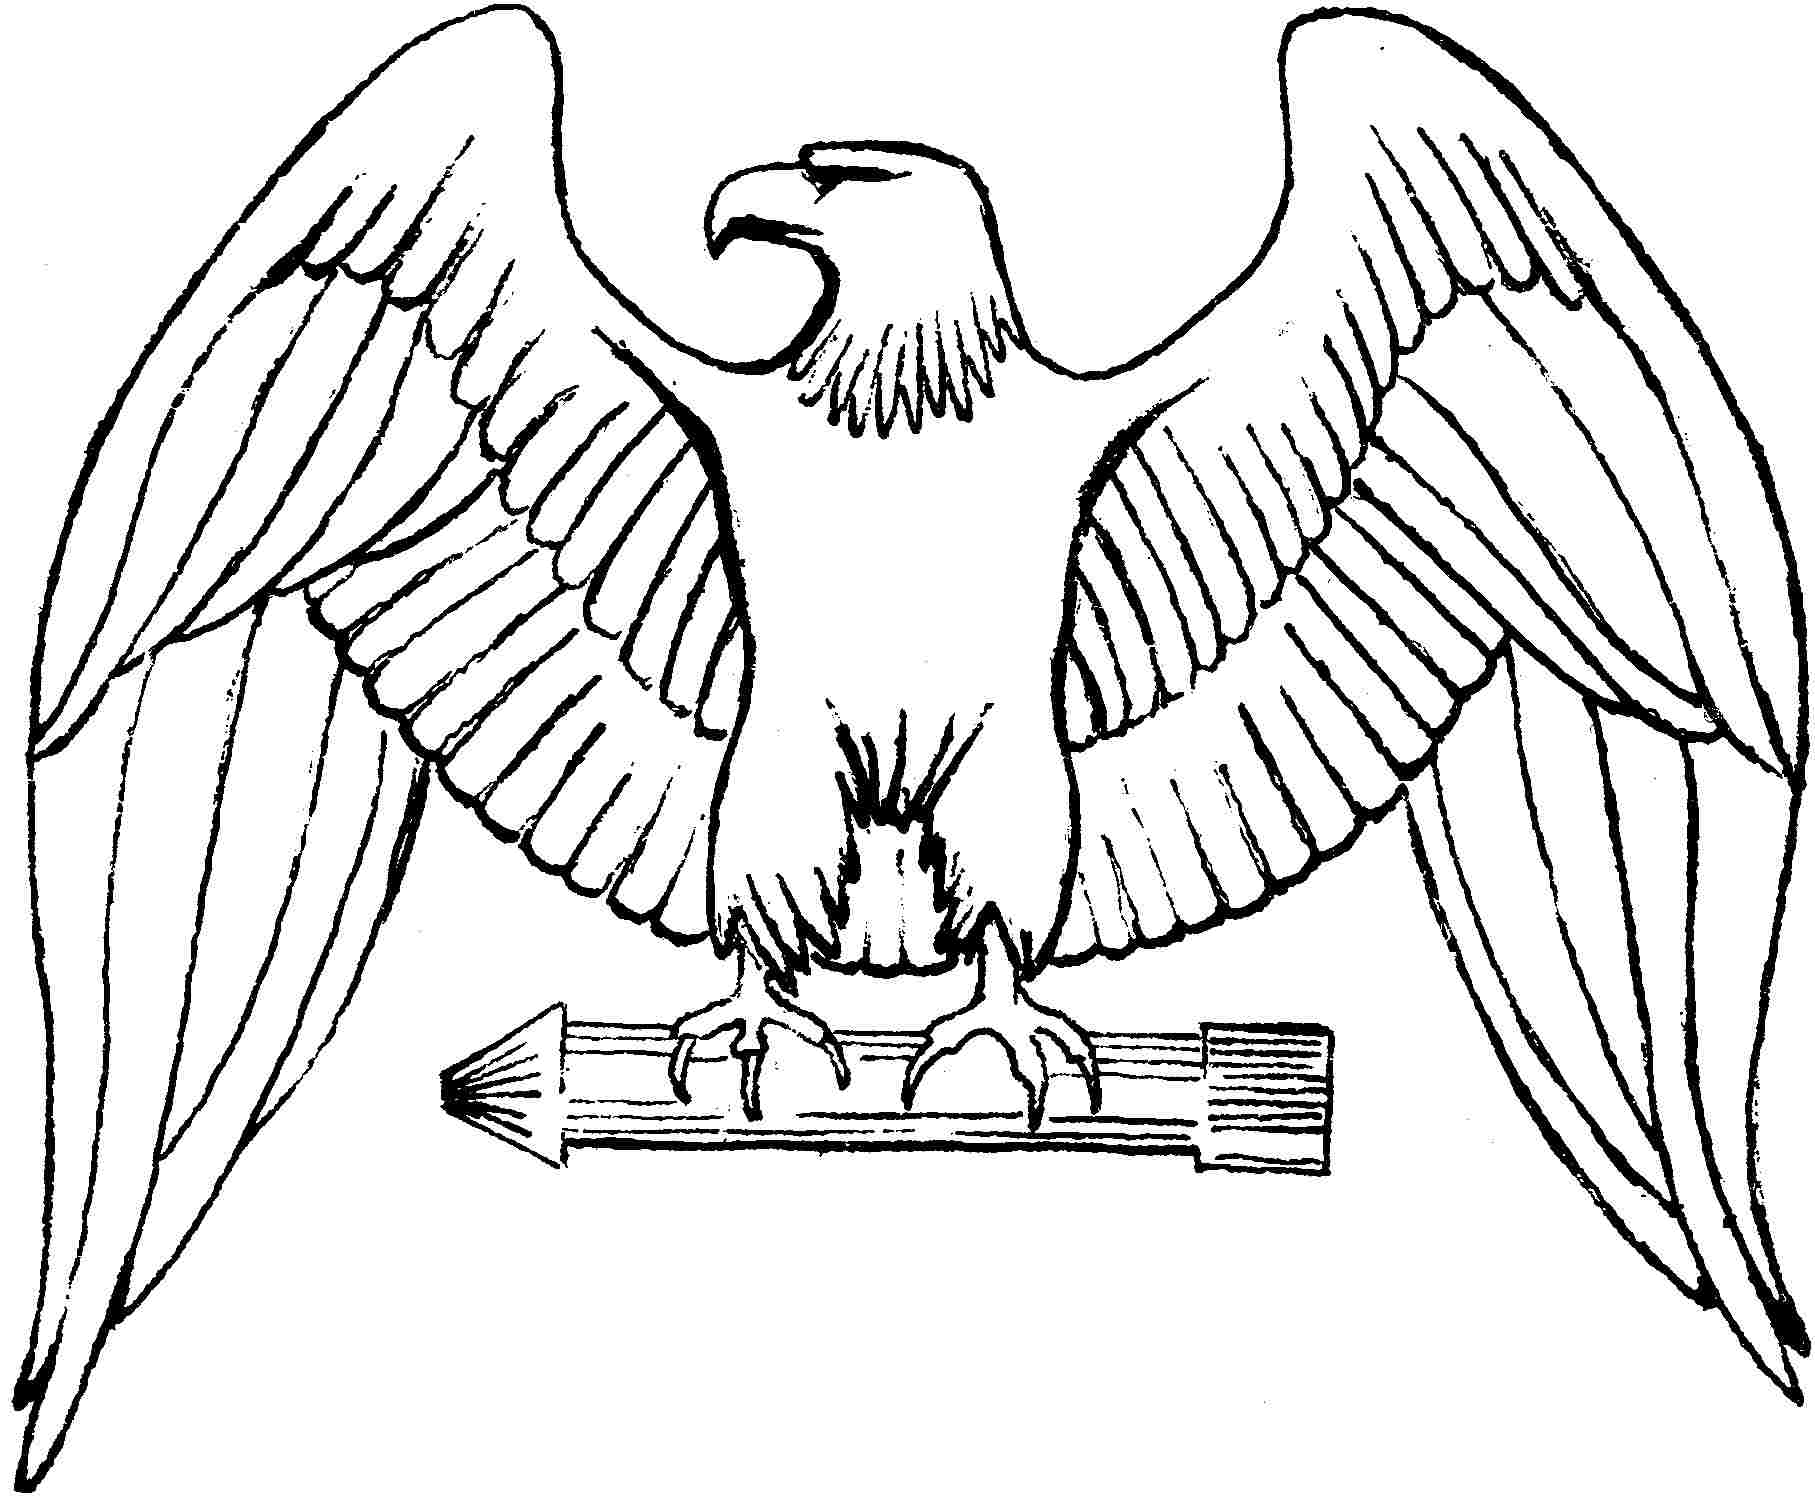 free printable coloring pages eagle printable eagle coloring pages for kids cool2bkids coloring printable eagle free pages